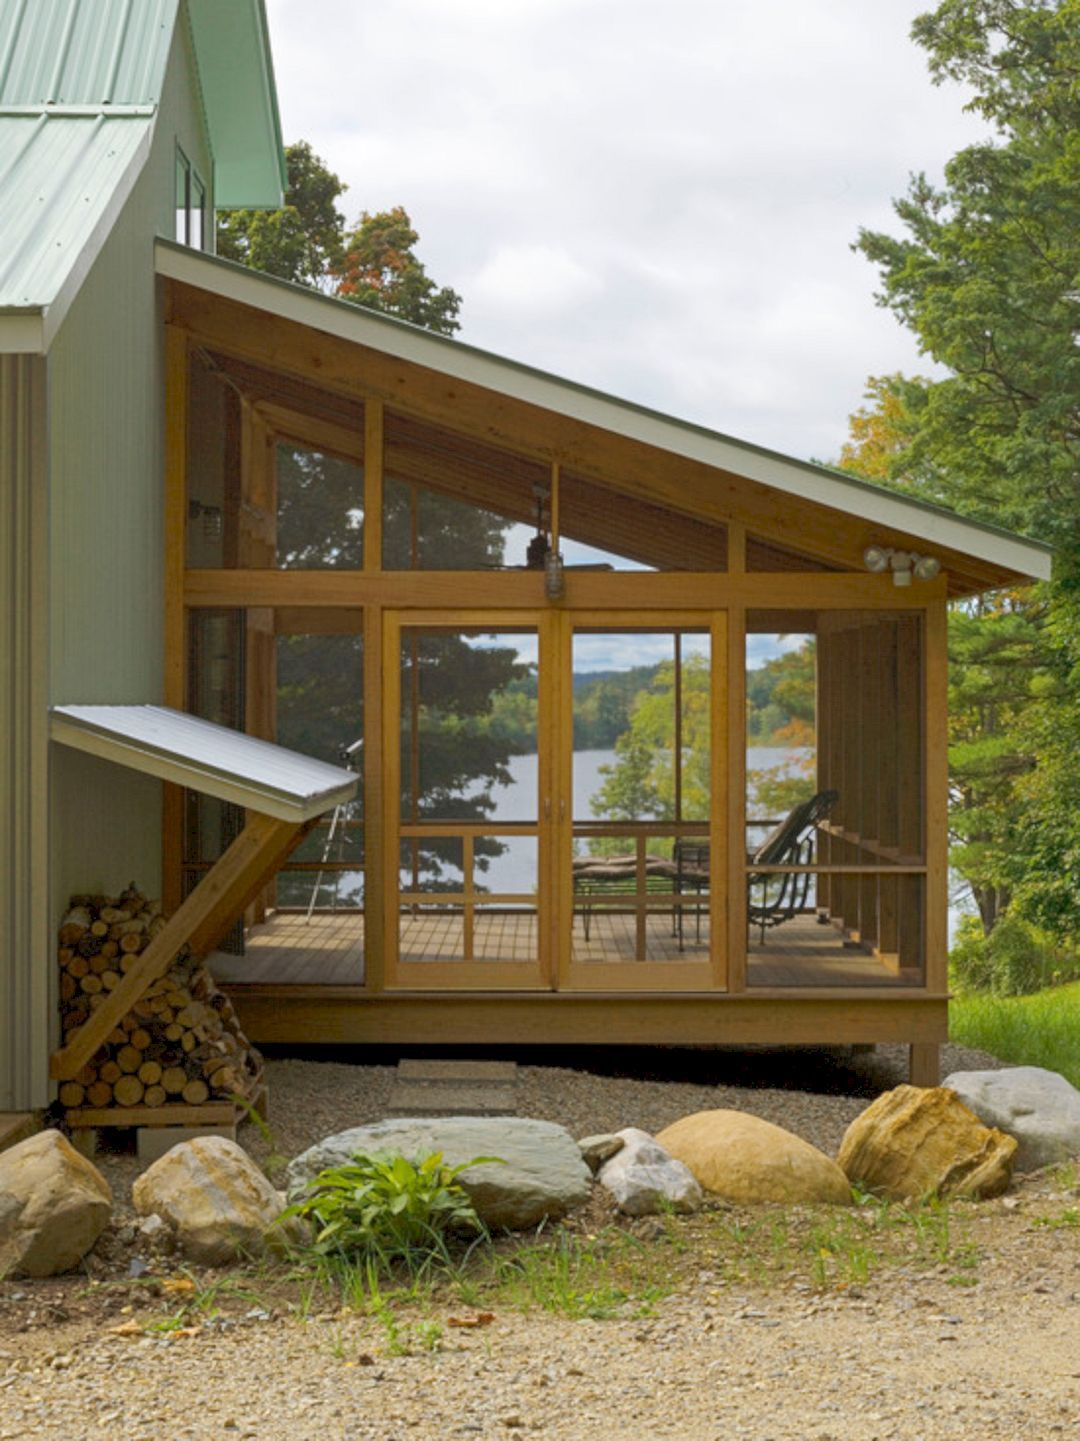 8 Ways To Have More Appealing Screened Porch Deck Screened Porch Designs Porch Design Backyard Porch